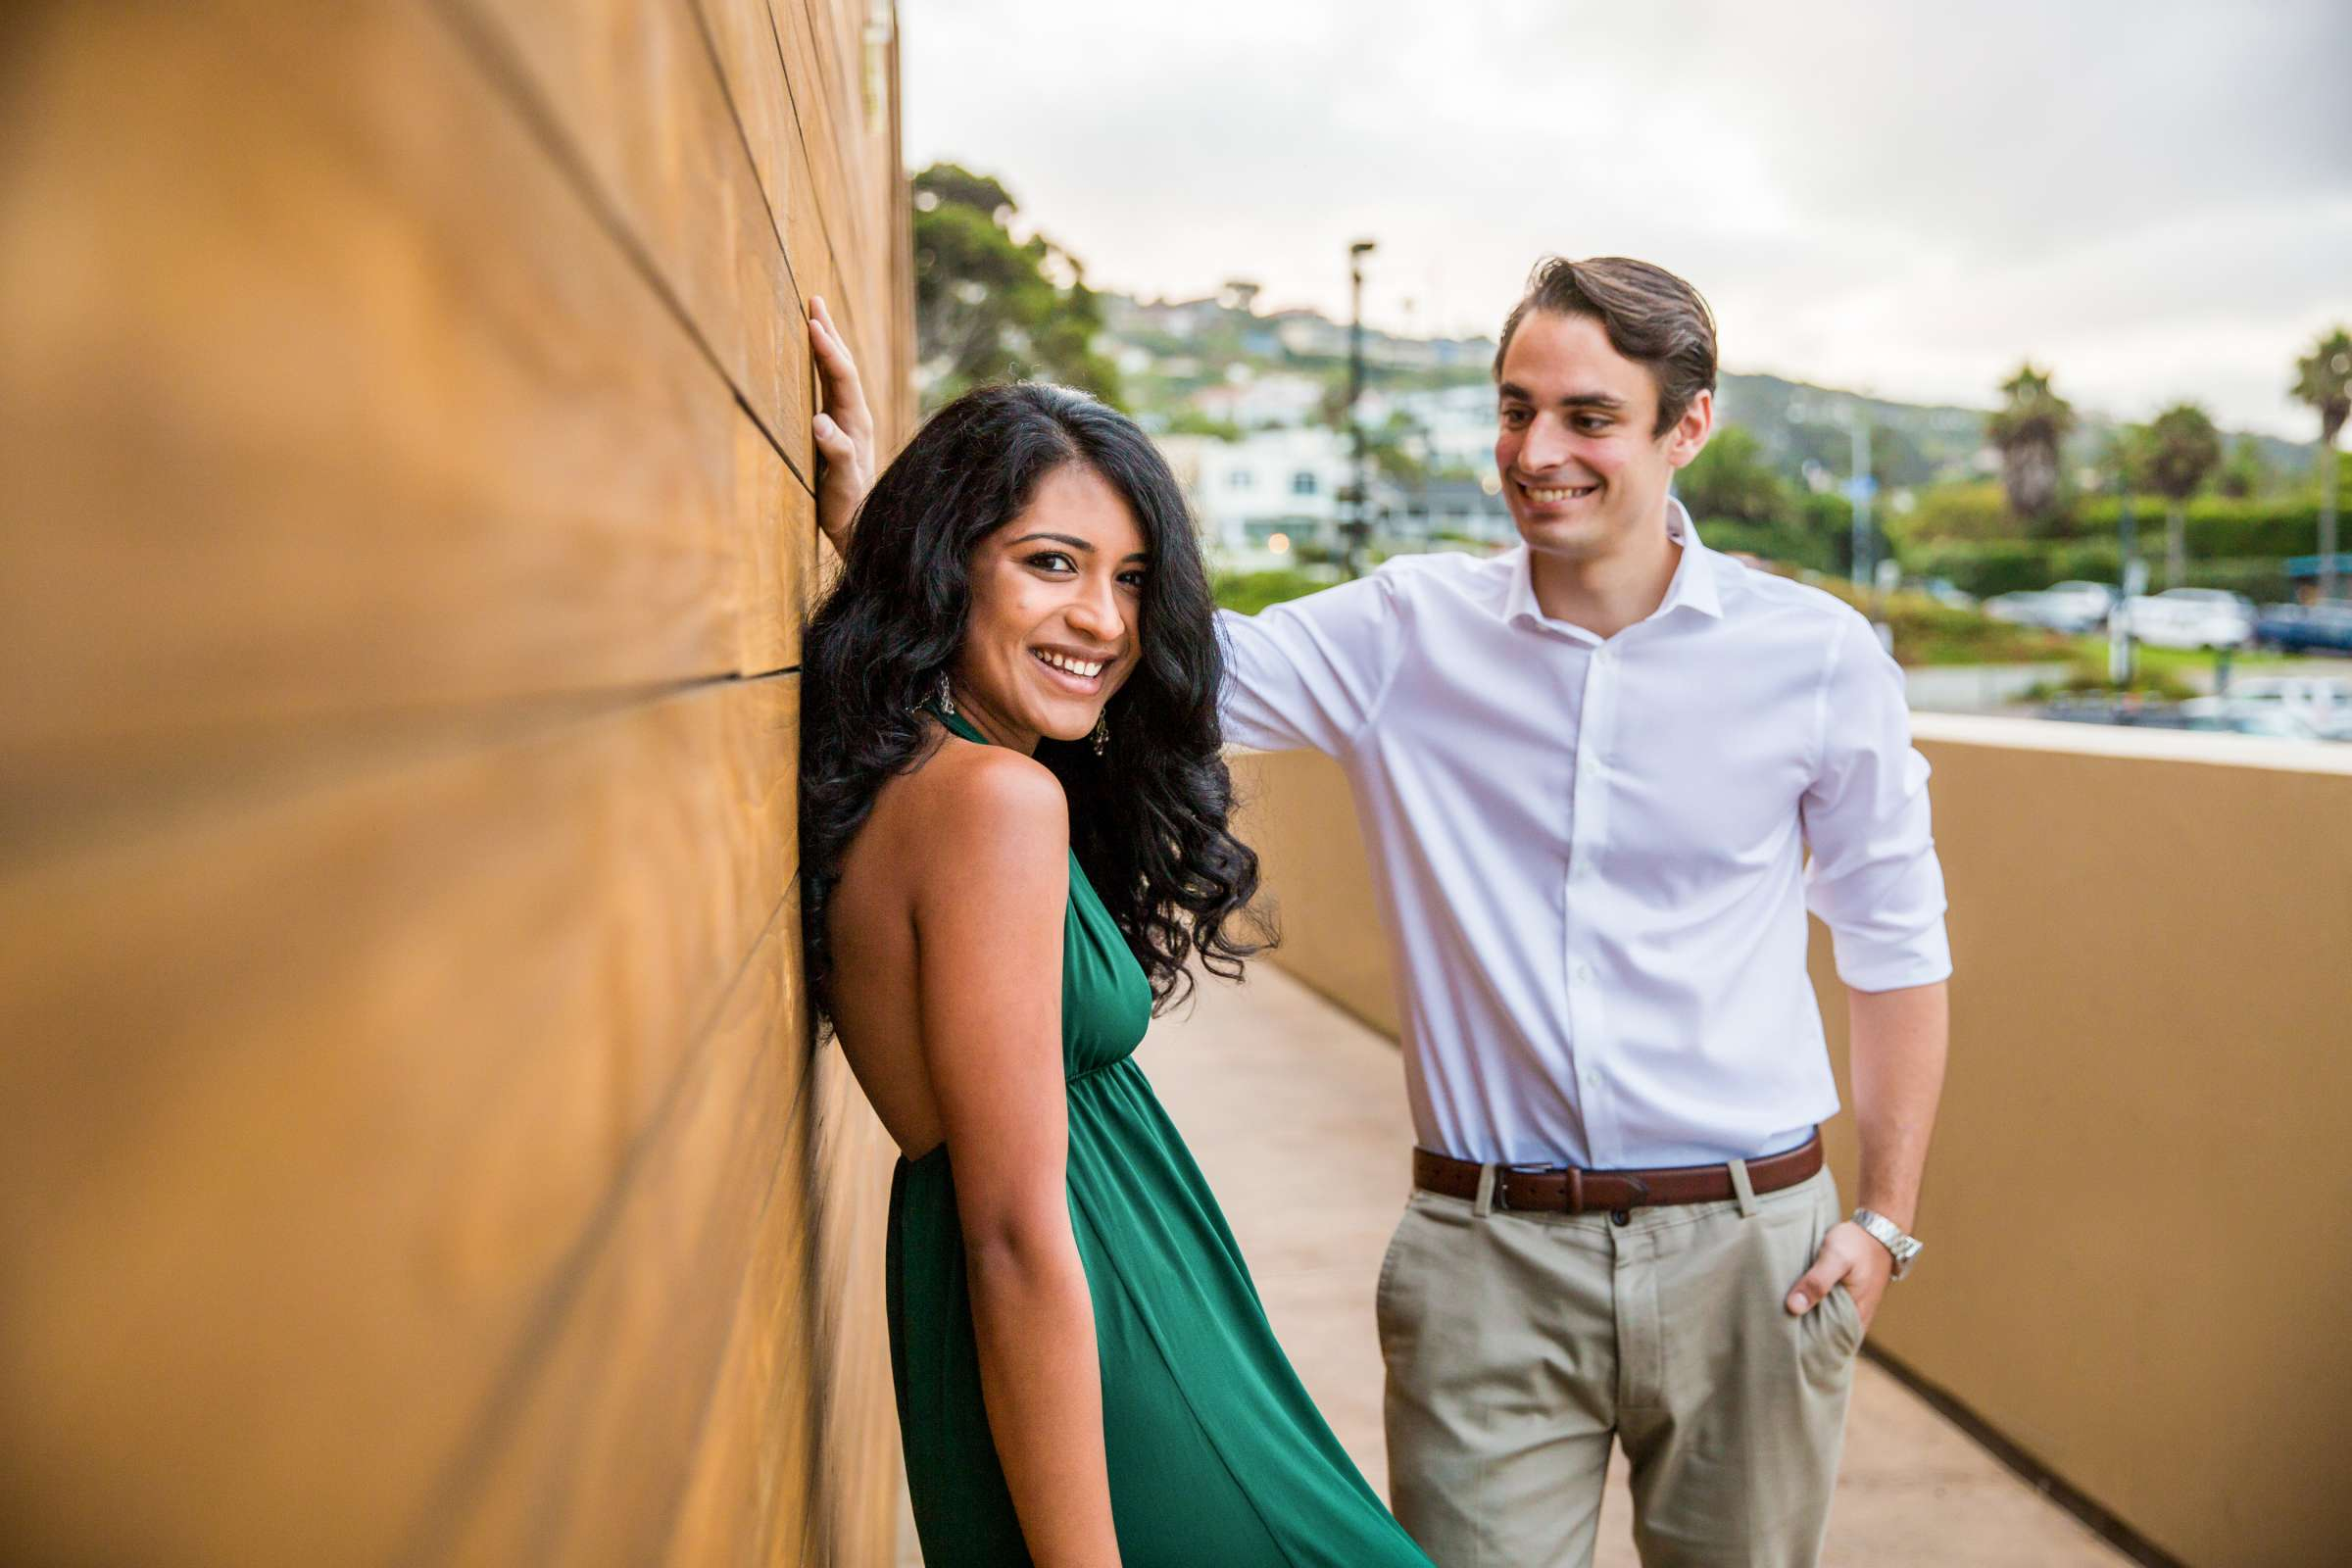 Grand Tradition Estate Engagement, Nikita and Jaycob Engagement Photo #5 by True Photography